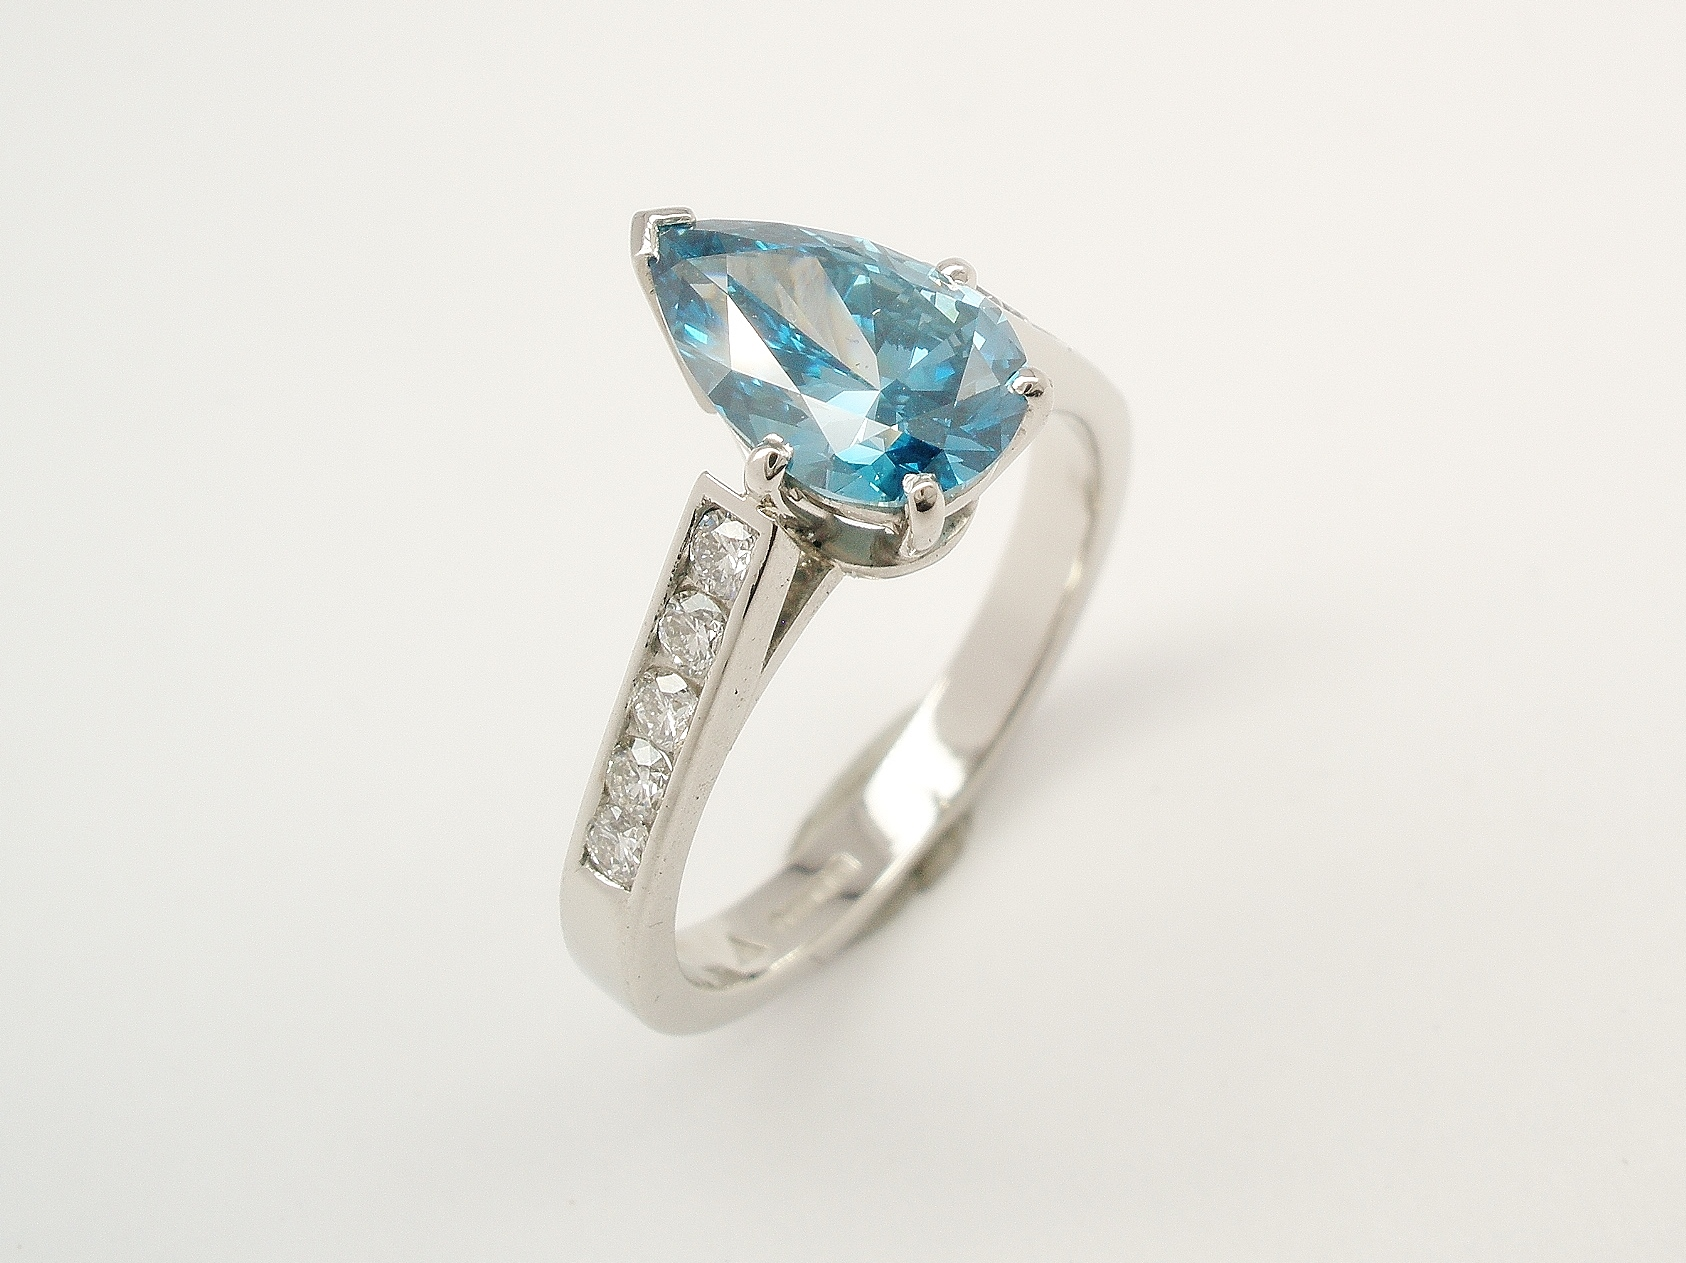 A single stone HTHP treated ocean blue pear shaped diamond ring mounted in platinum with channel set white round brilliant cut diamond shoulders.